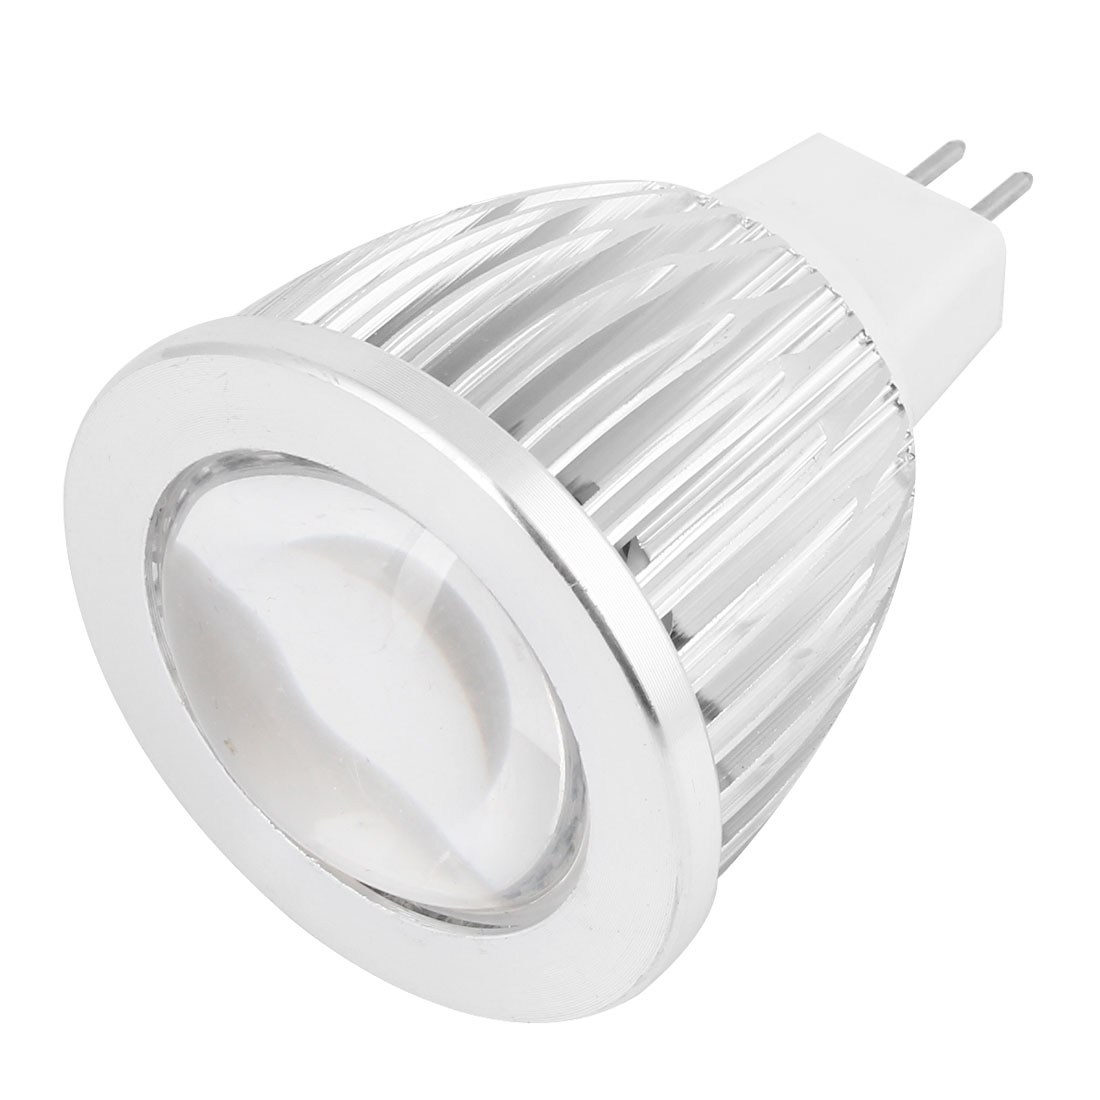 Energy Saving MR16 Warm White COB LED Spotlight Light Lamp Bulb AC 85-265V 5W